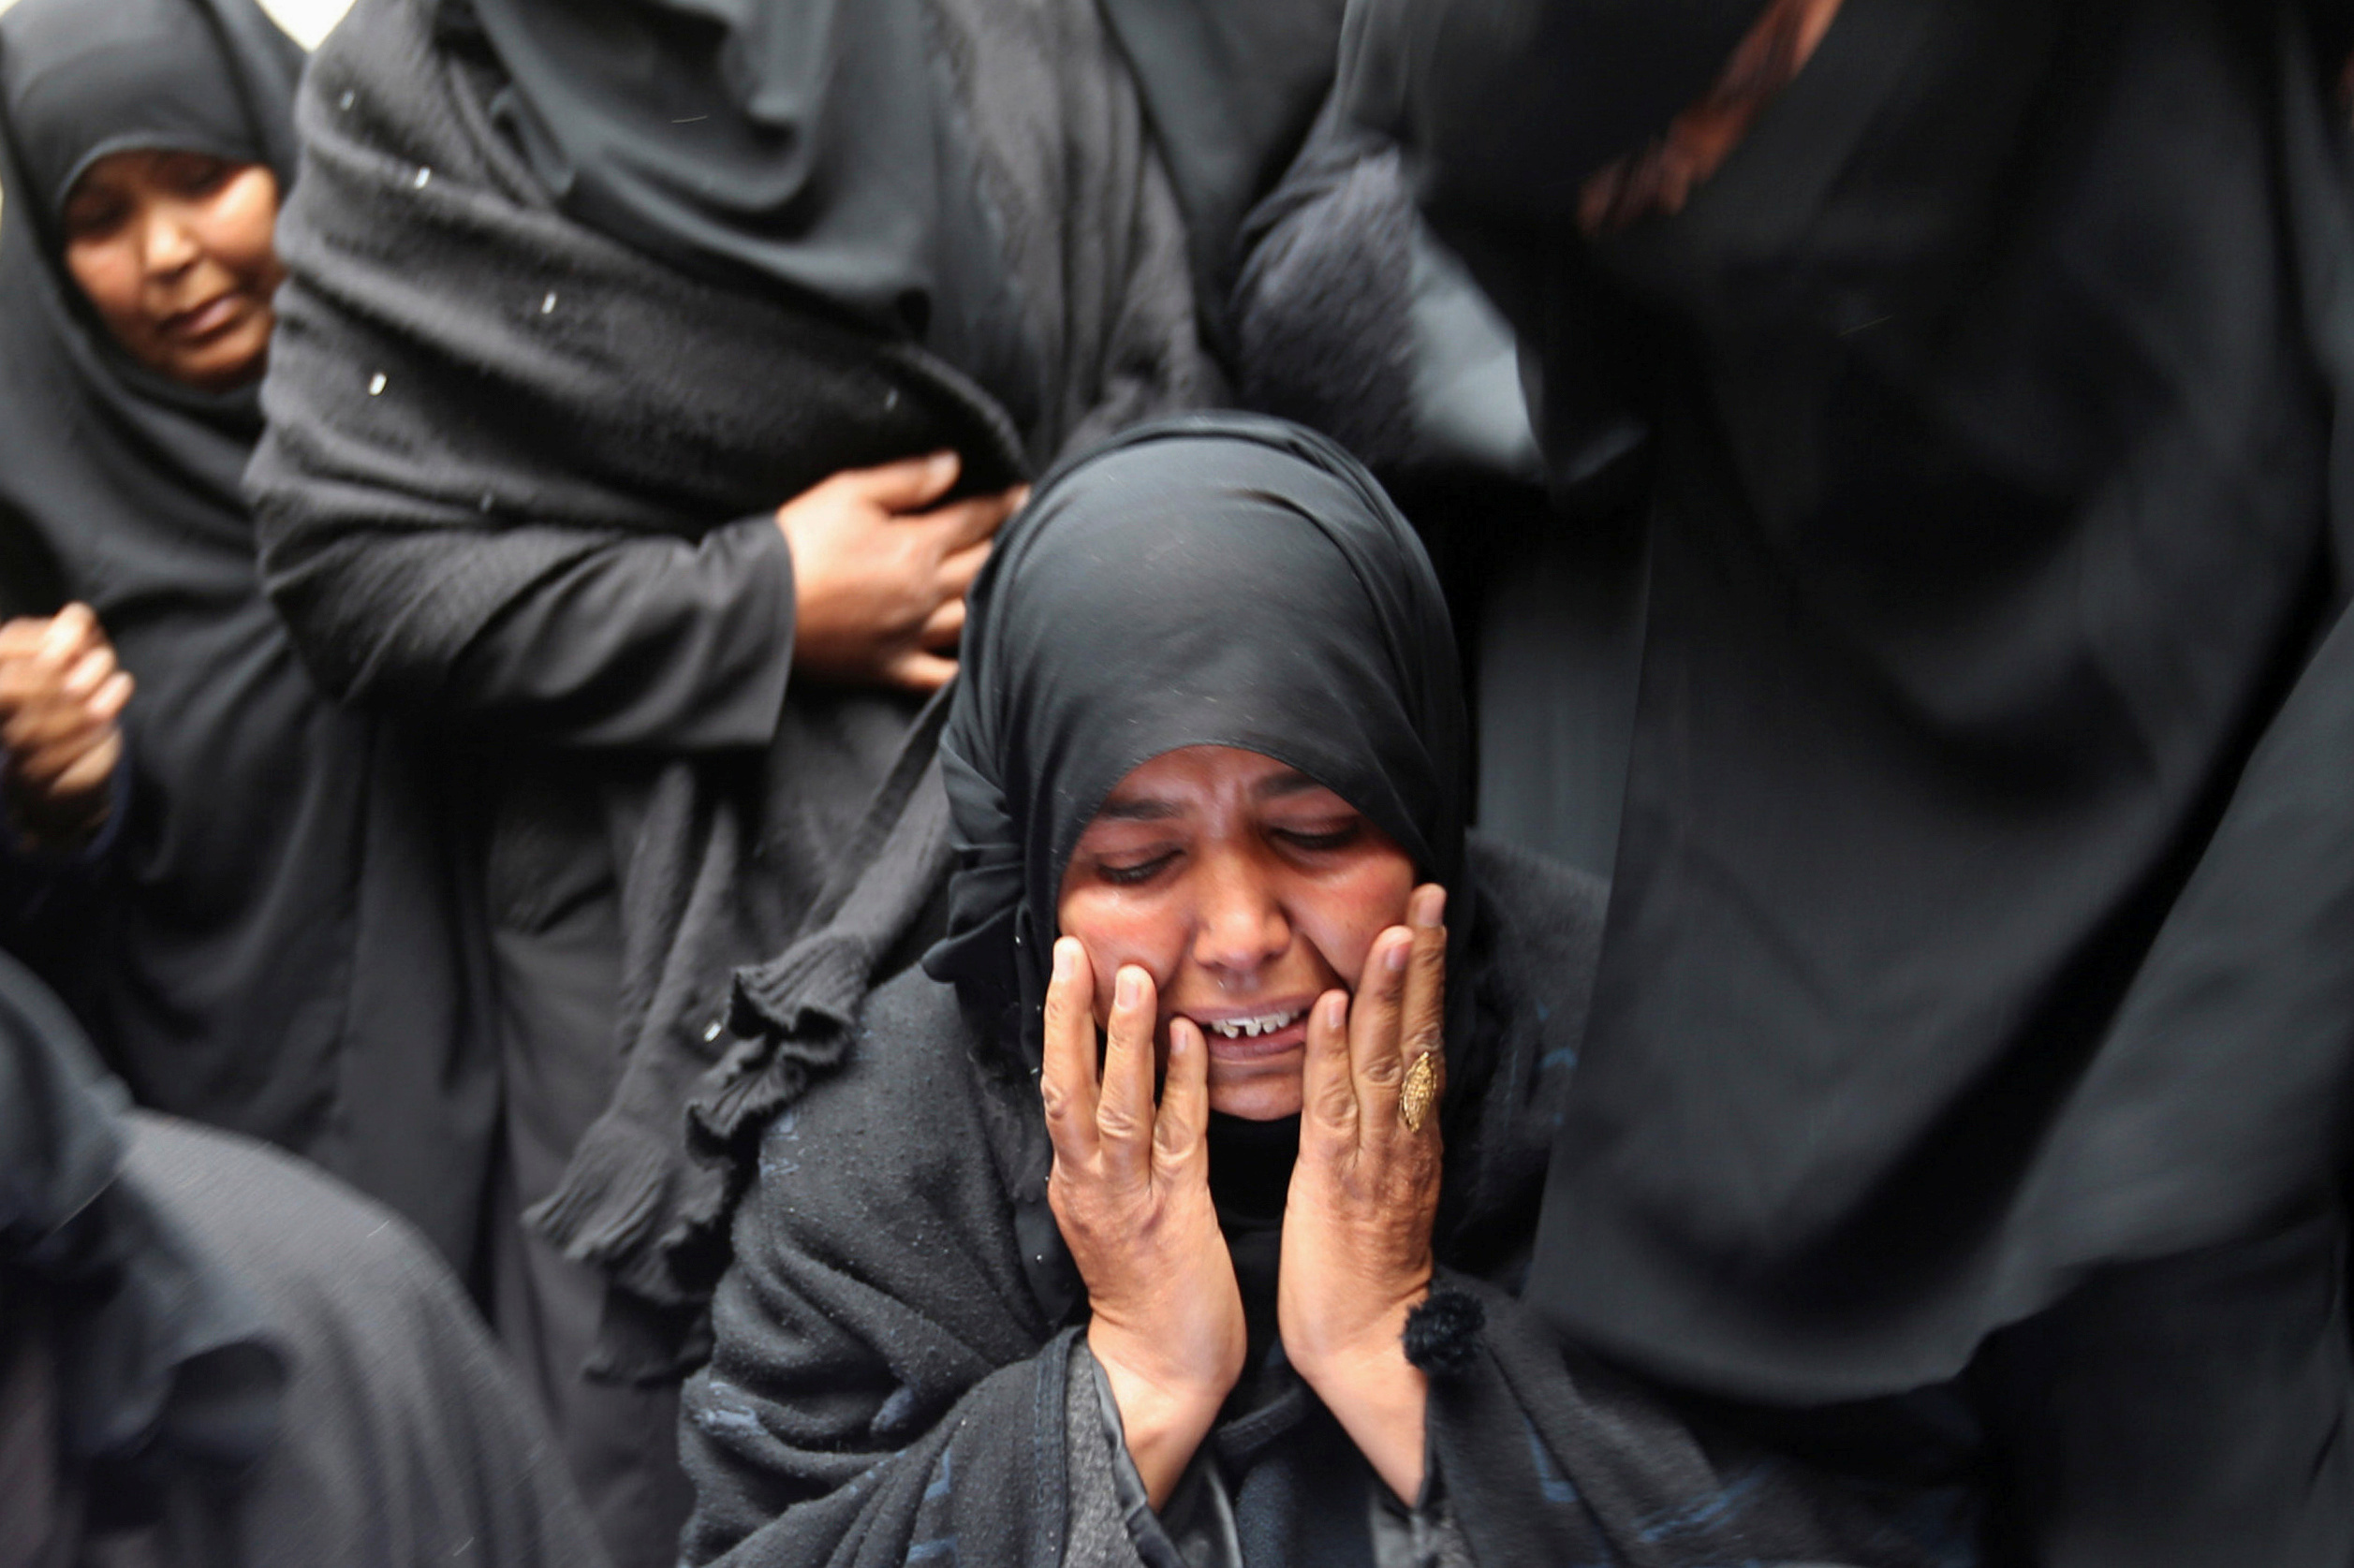 RAFAH 2017-03-22 A relative mourns during the funeral of Palestinian Youssef Abu Azra, who according to hospital officials was killed by Israeli fire and whom the Israeli forces said was detected with other suspects near the security fence, in Rafah, Gaza Strip March 22, 2017. REUTERS/Ibraheem Abu Mustafa TPX IMAGES OF THE DAY Photo: / REUTERS / TT / kod 72000